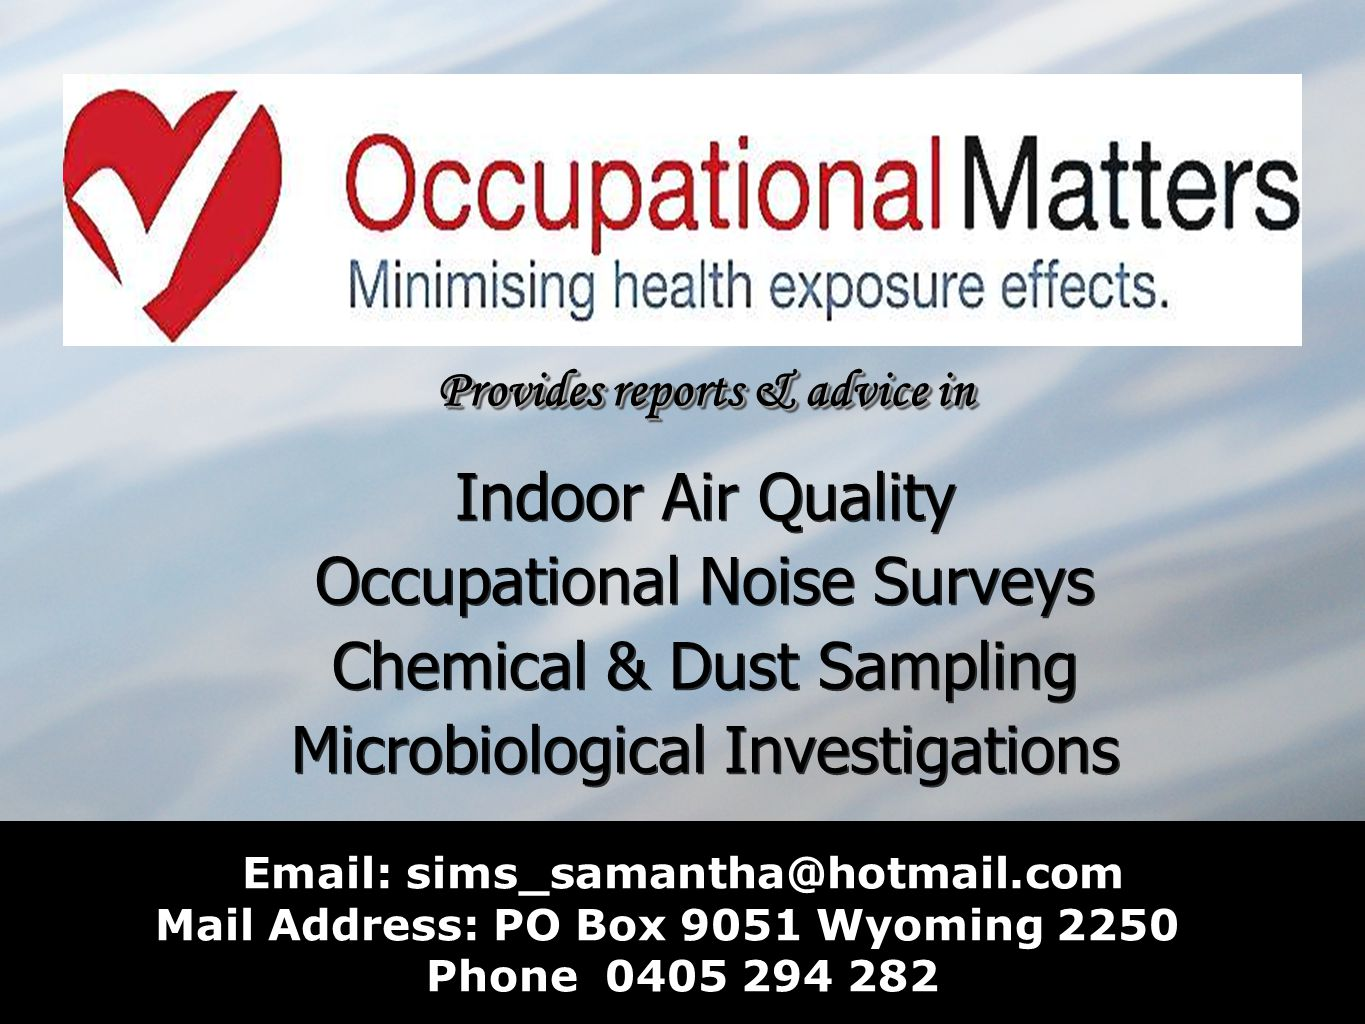 Provides reports & advice in Indoor Air Quality Occupational Noise Surveys Chemical & Dust Sampling Microbiological Investigations Provides reports &